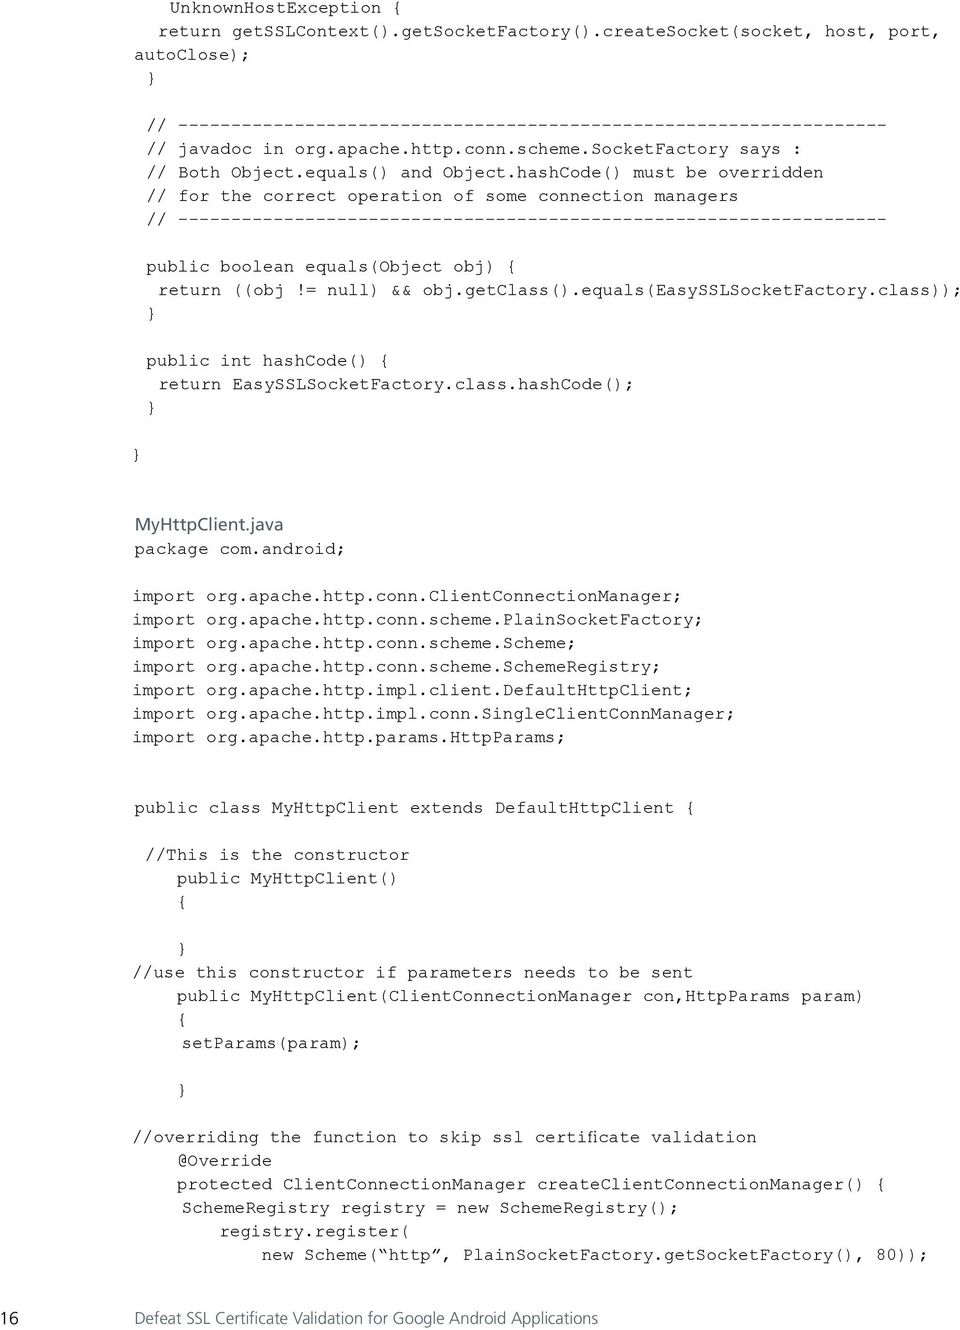 Defeat Ssl Certificate Validation For Google Android Applications Pdf